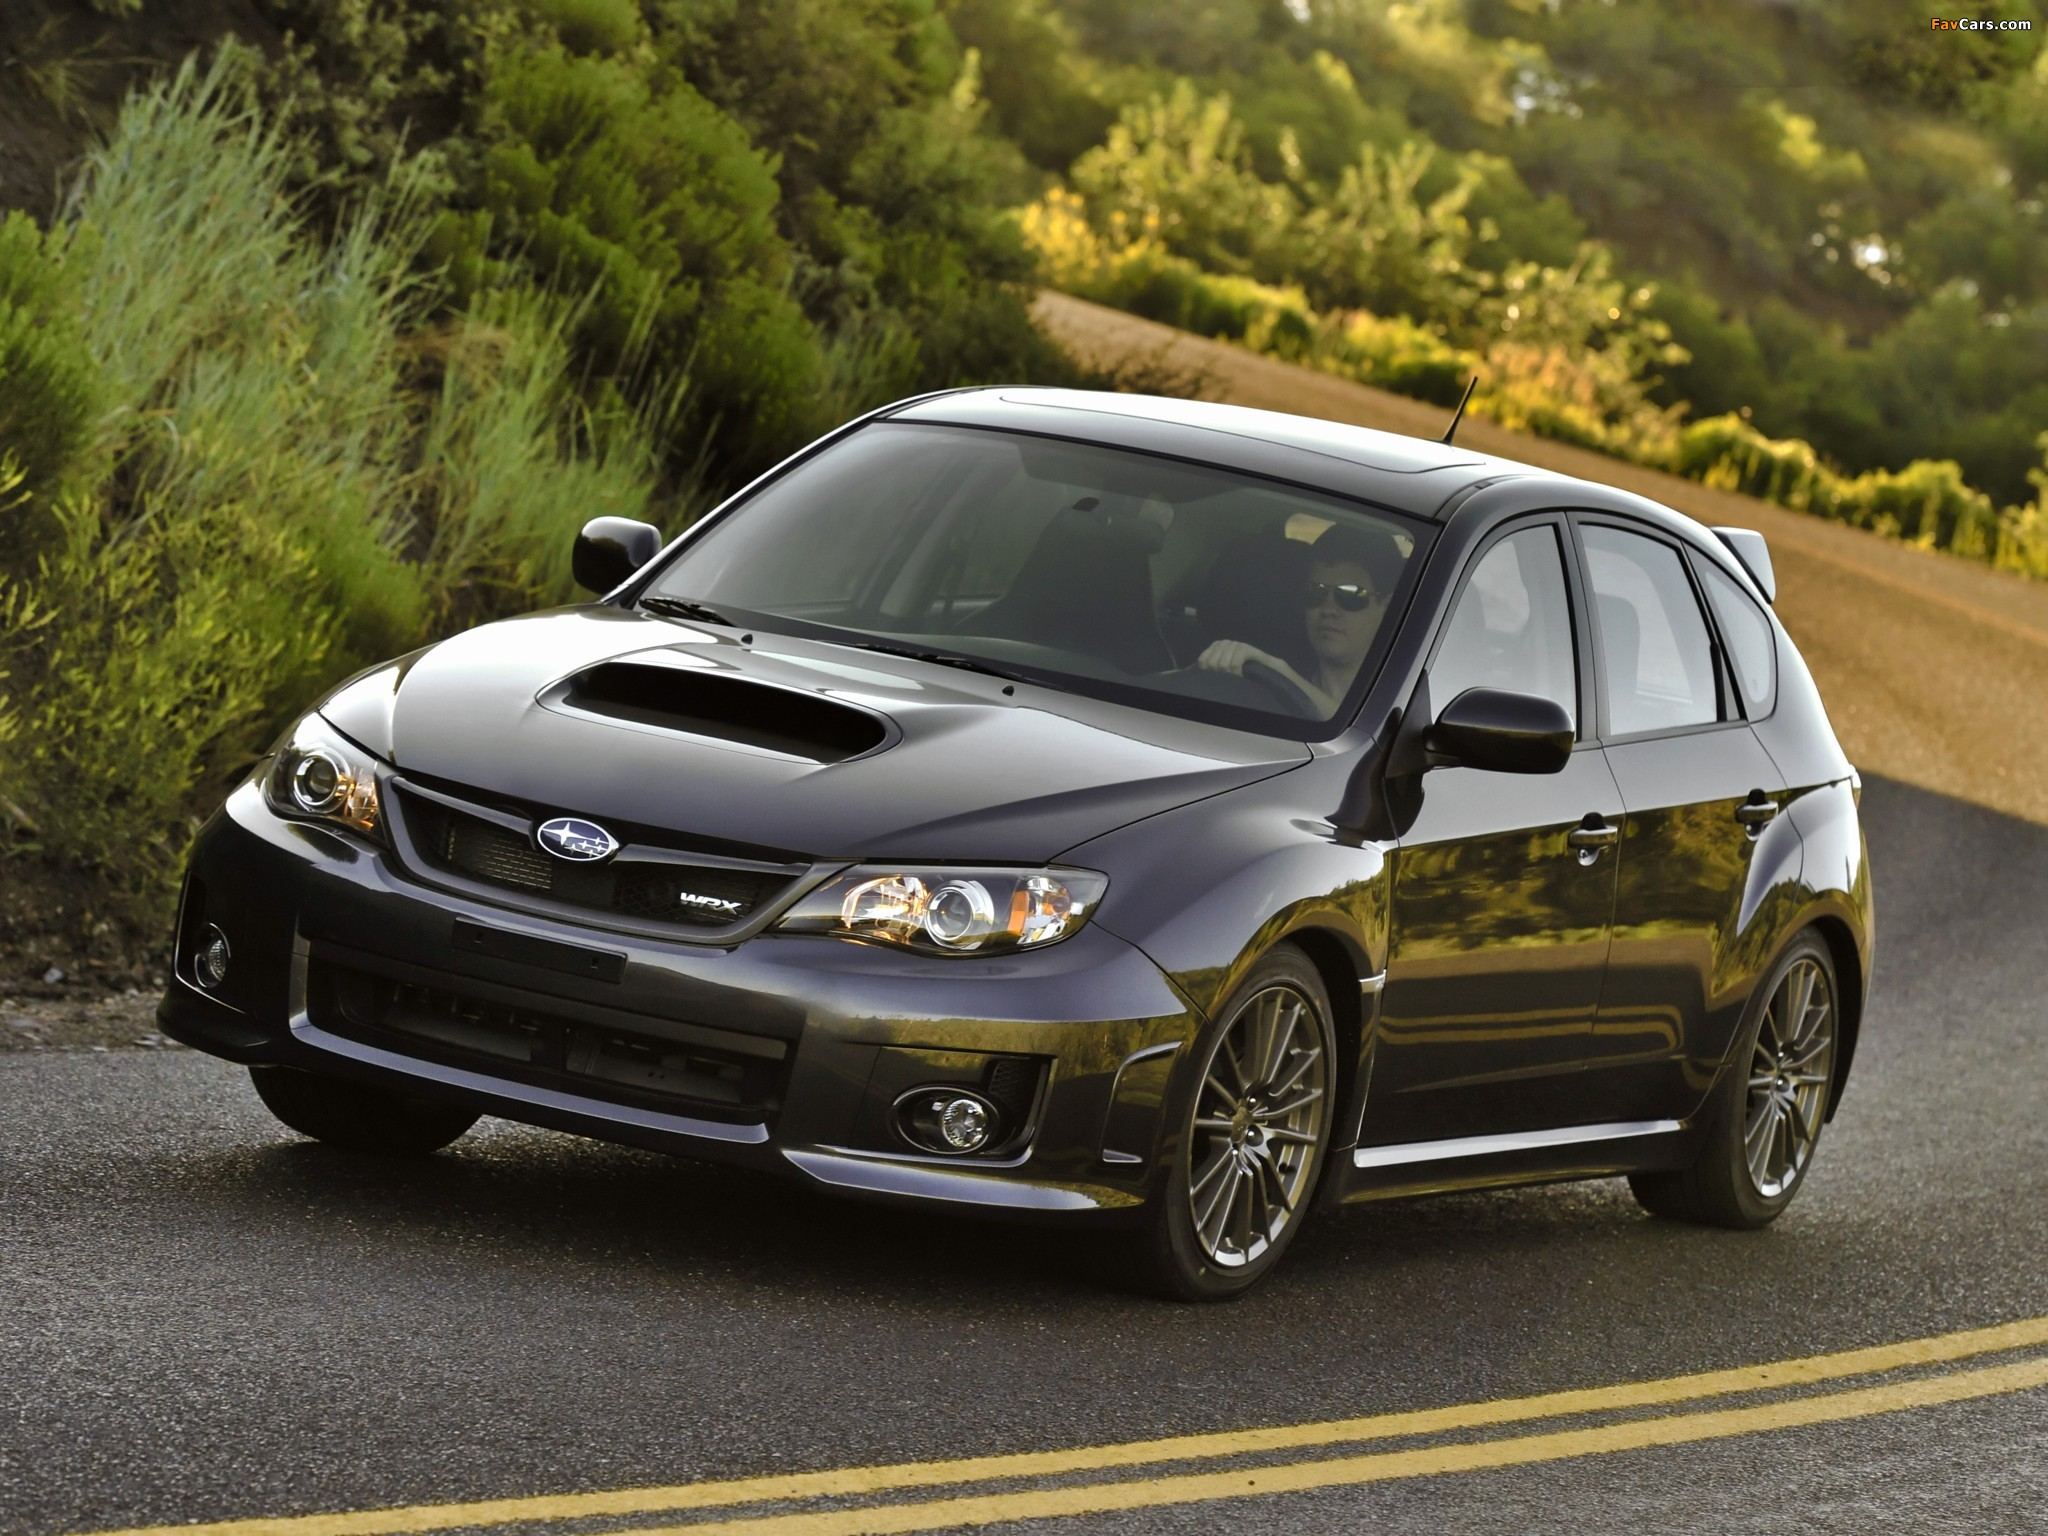 pictures of subaru impreza wrx hatchback us spec 2010. Black Bedroom Furniture Sets. Home Design Ideas